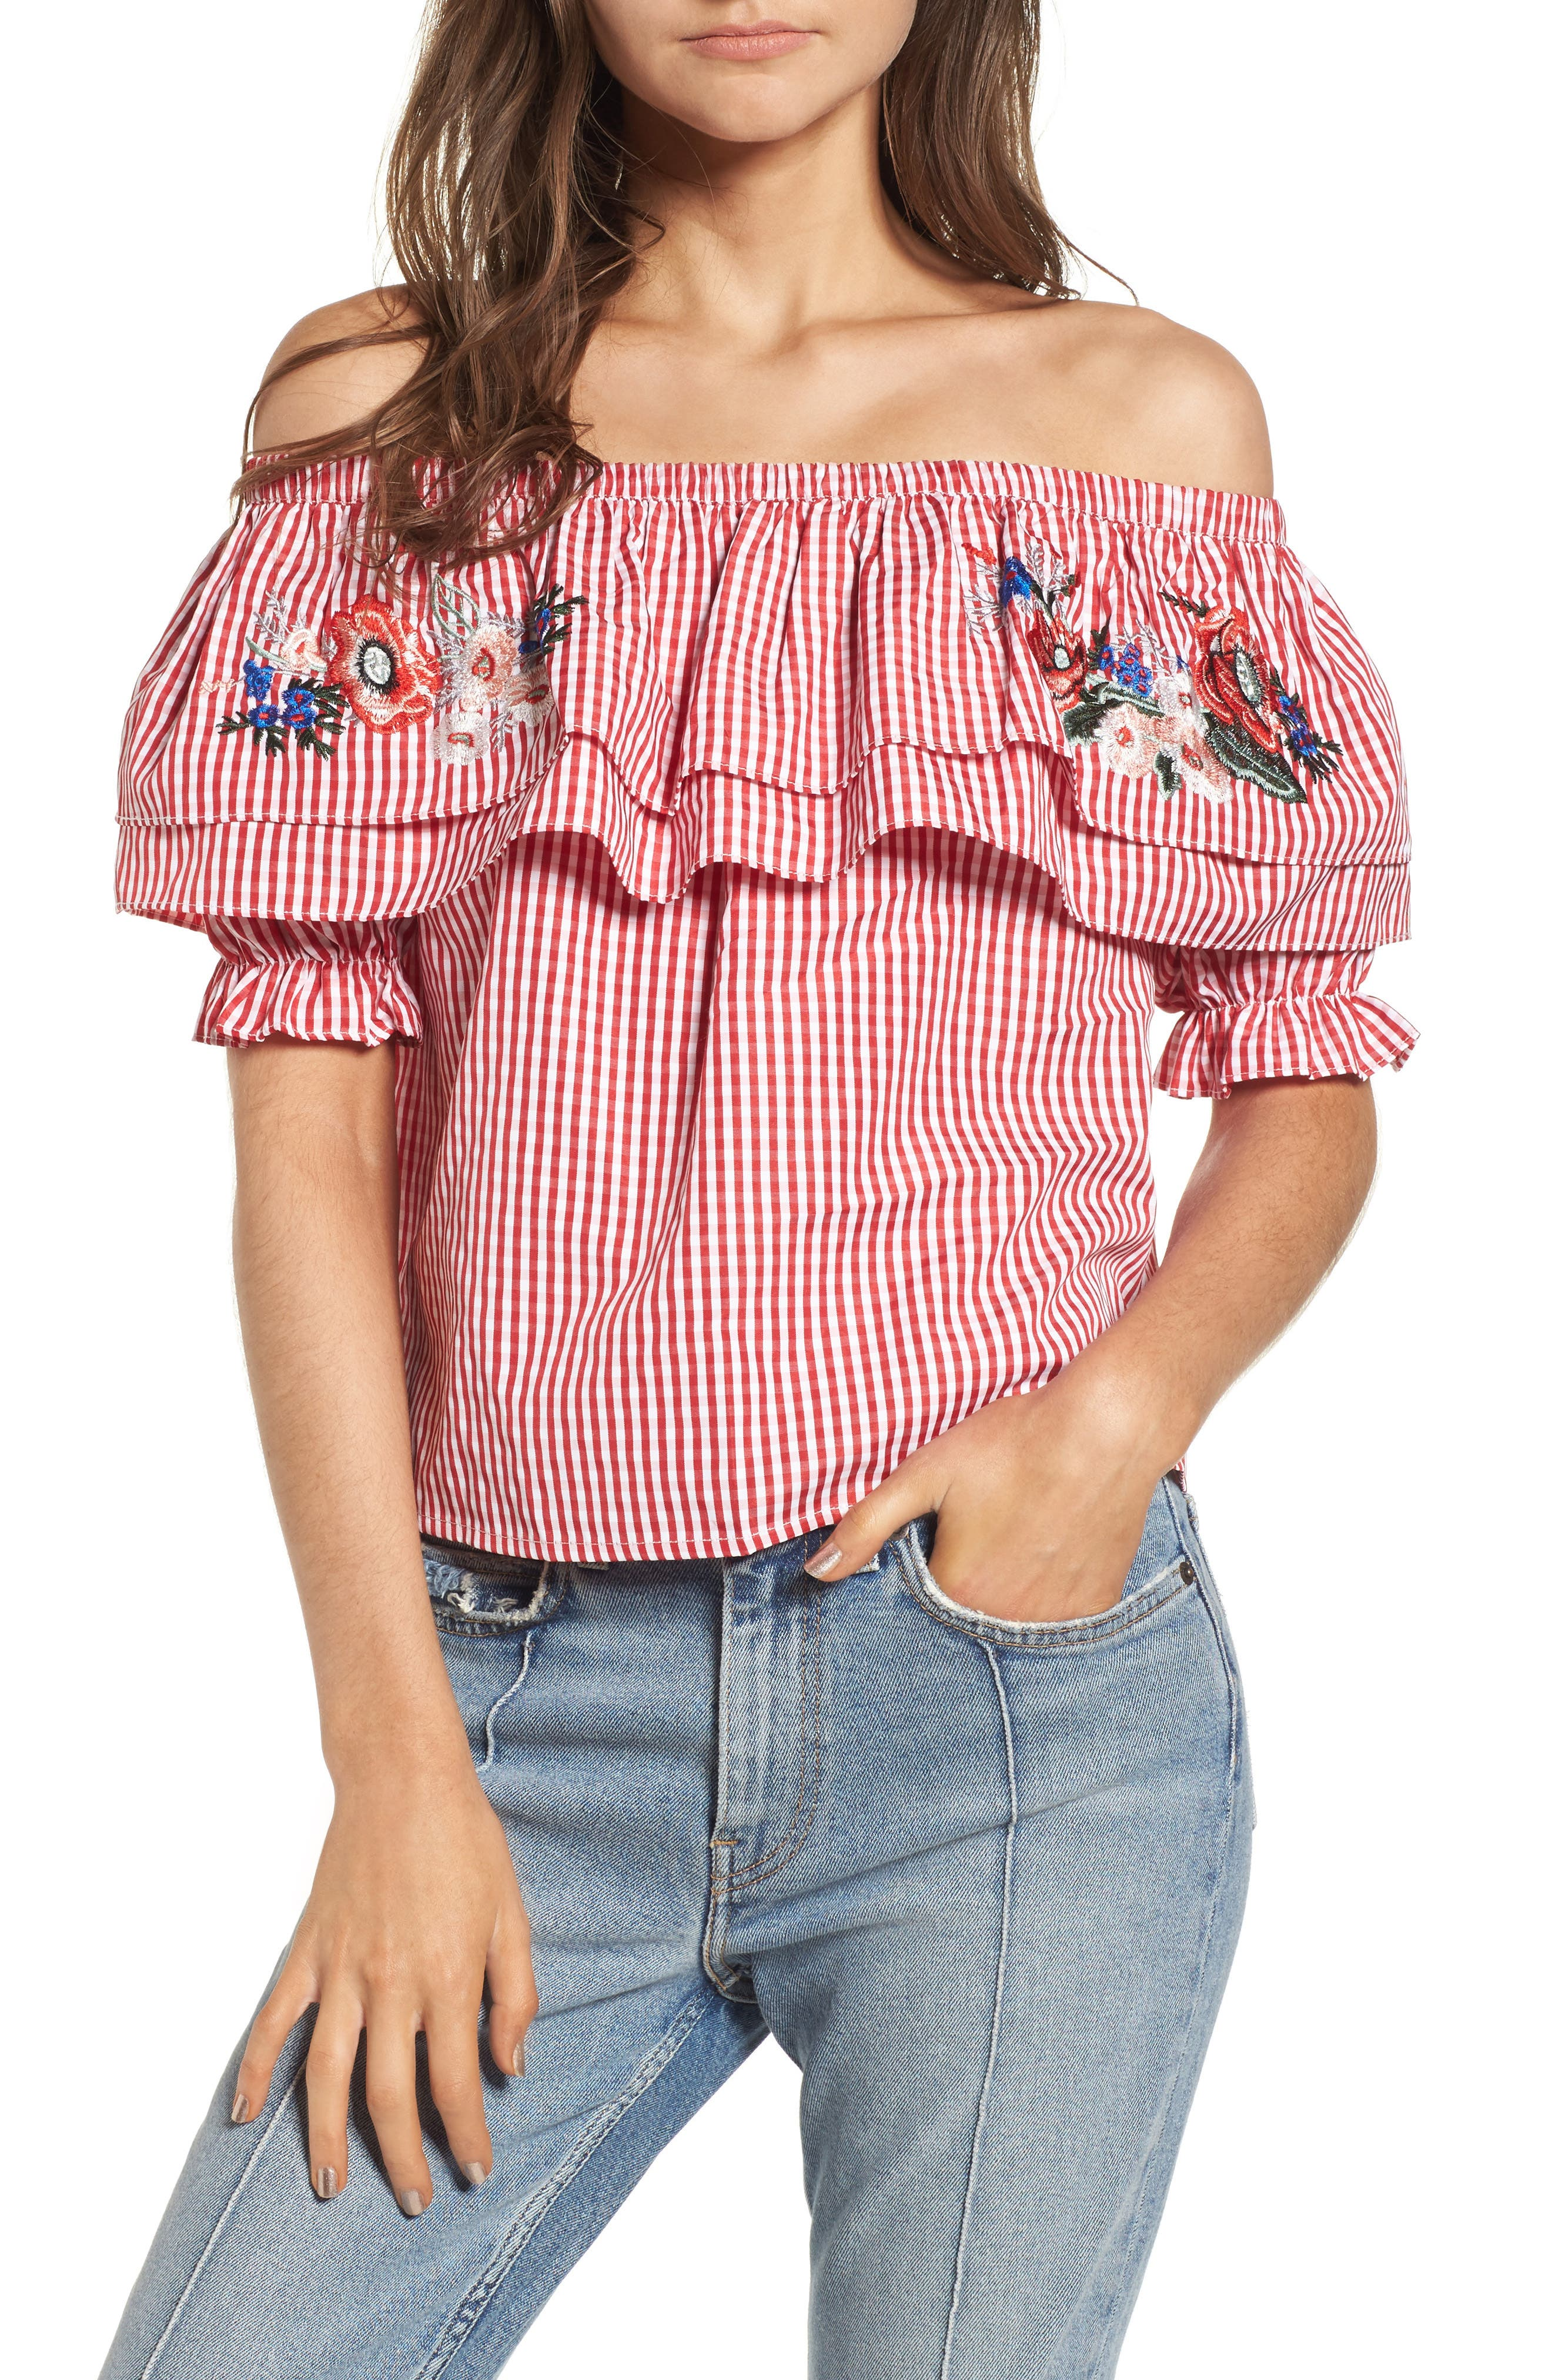 LOST + WANDER, Embroidered Gingham Off the Shoulder Top, Main thumbnail 1, color, 640